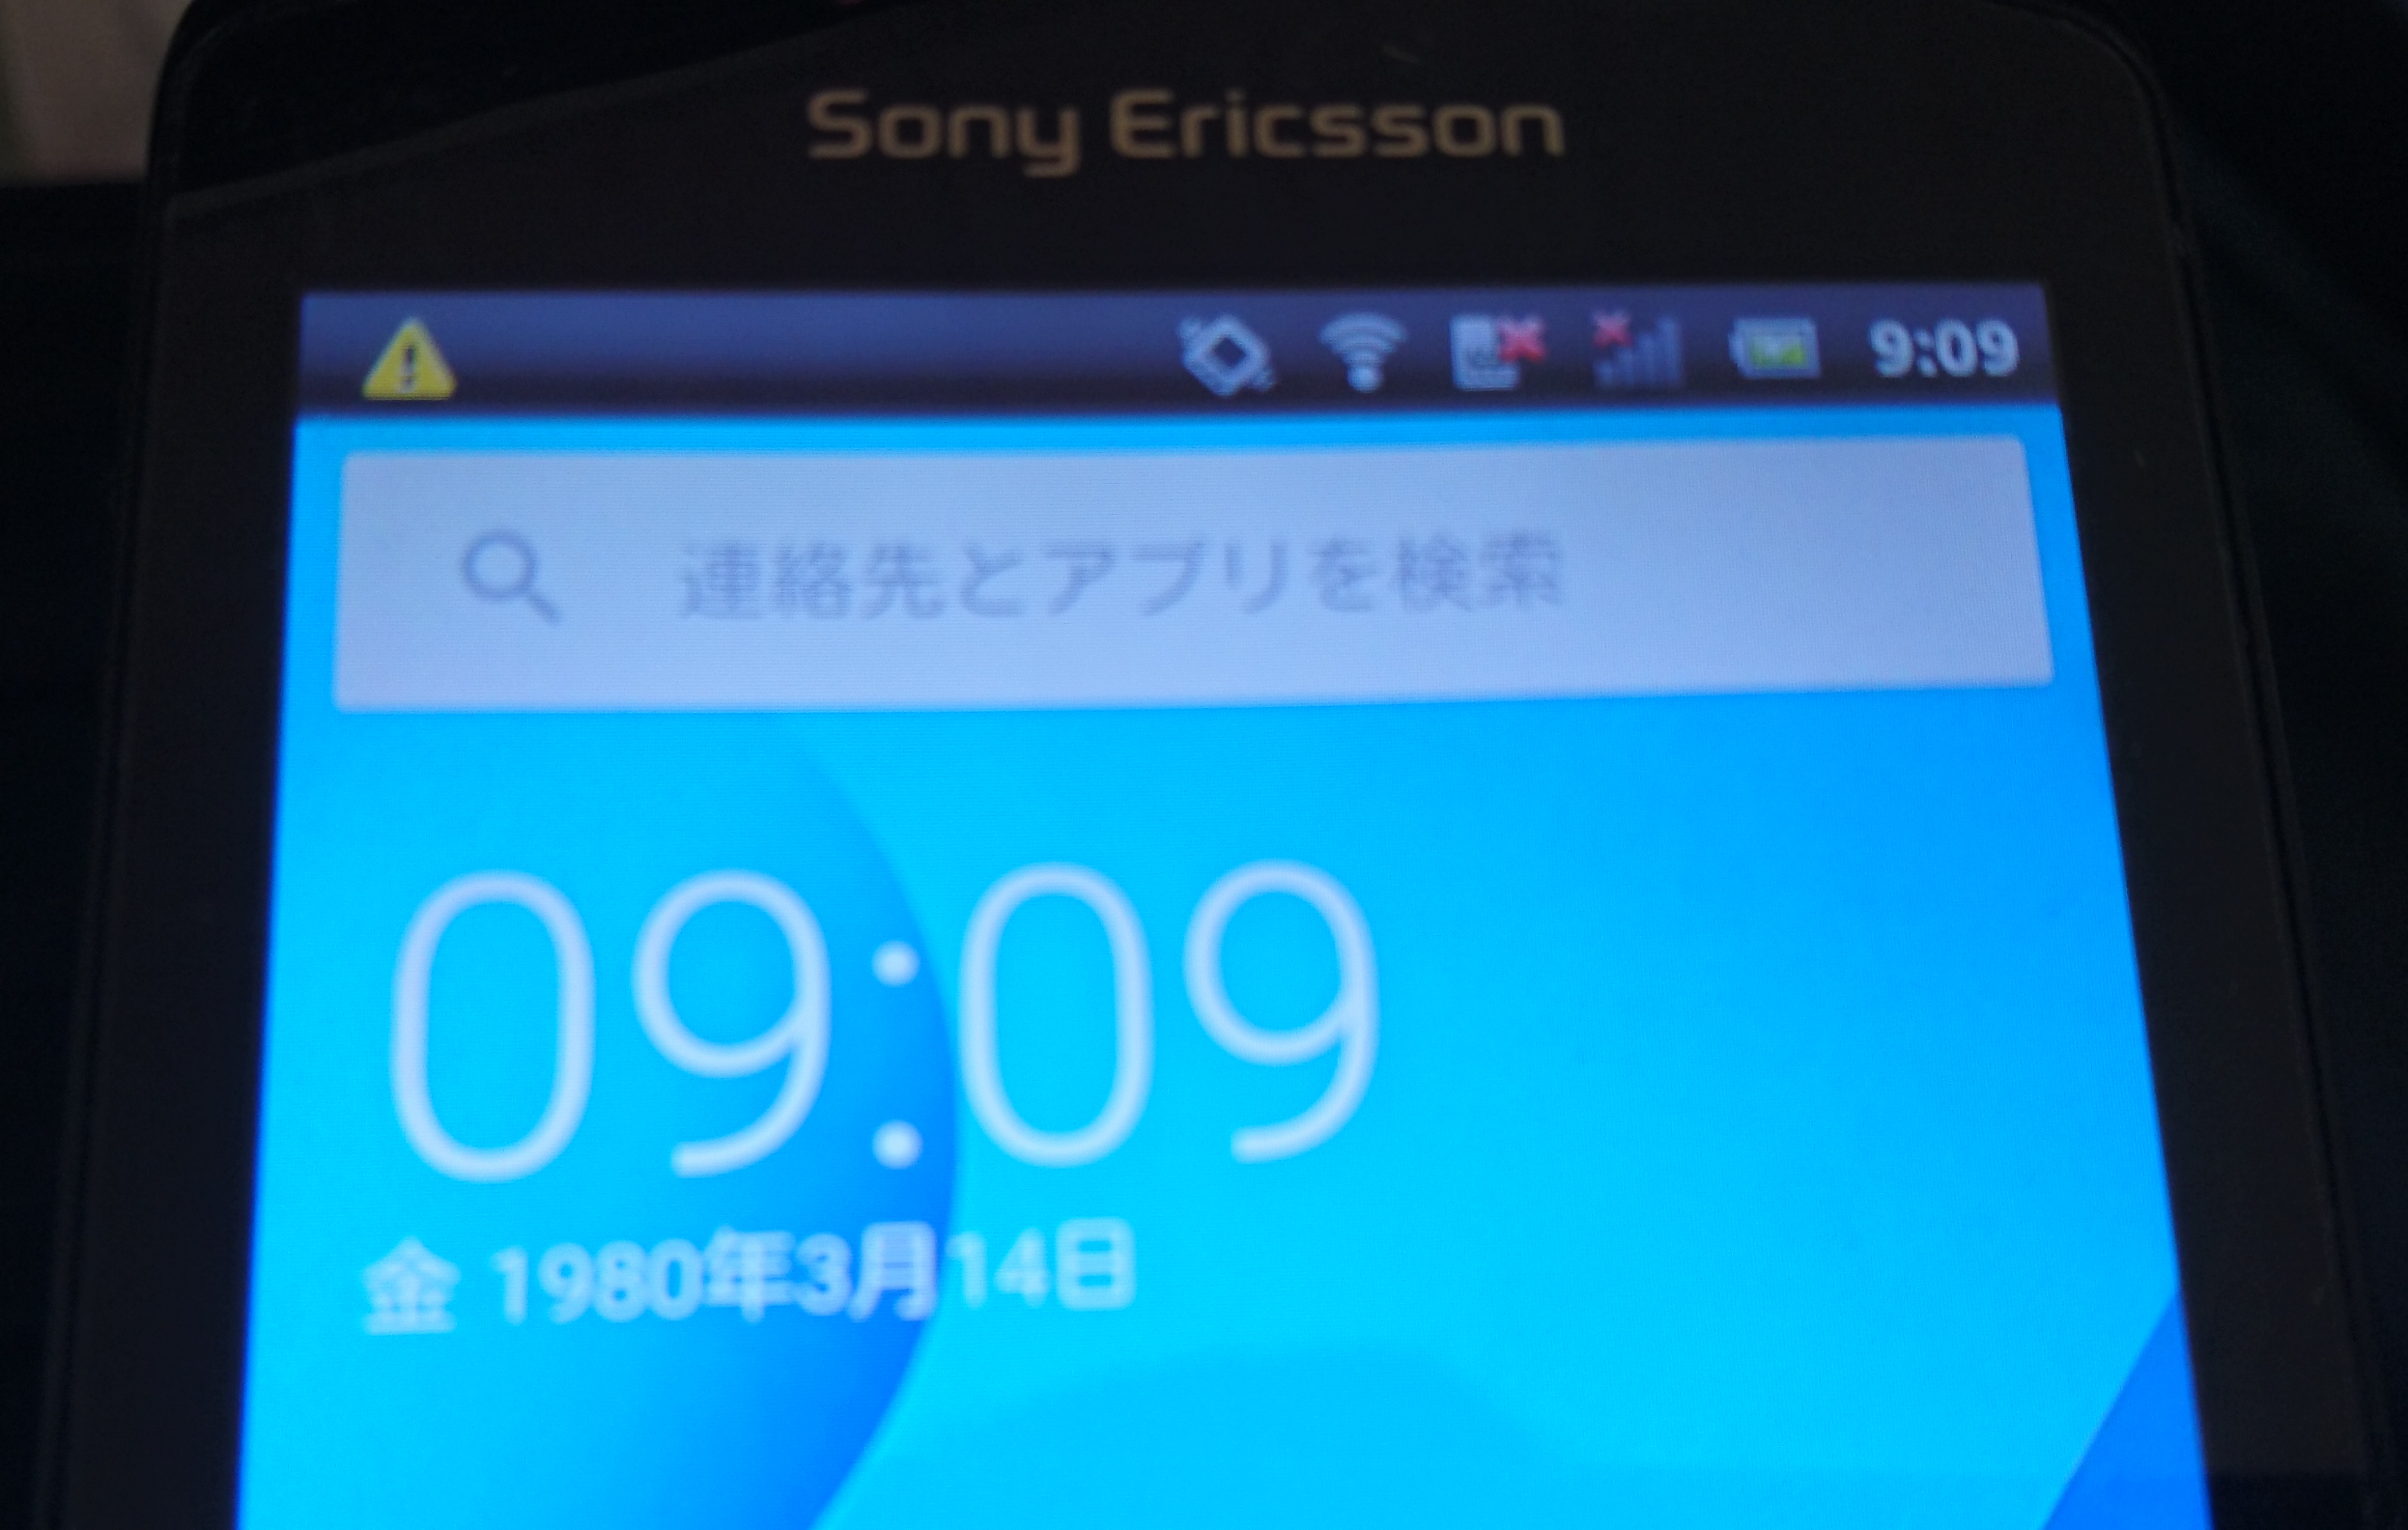 Android Xperia SO-01D